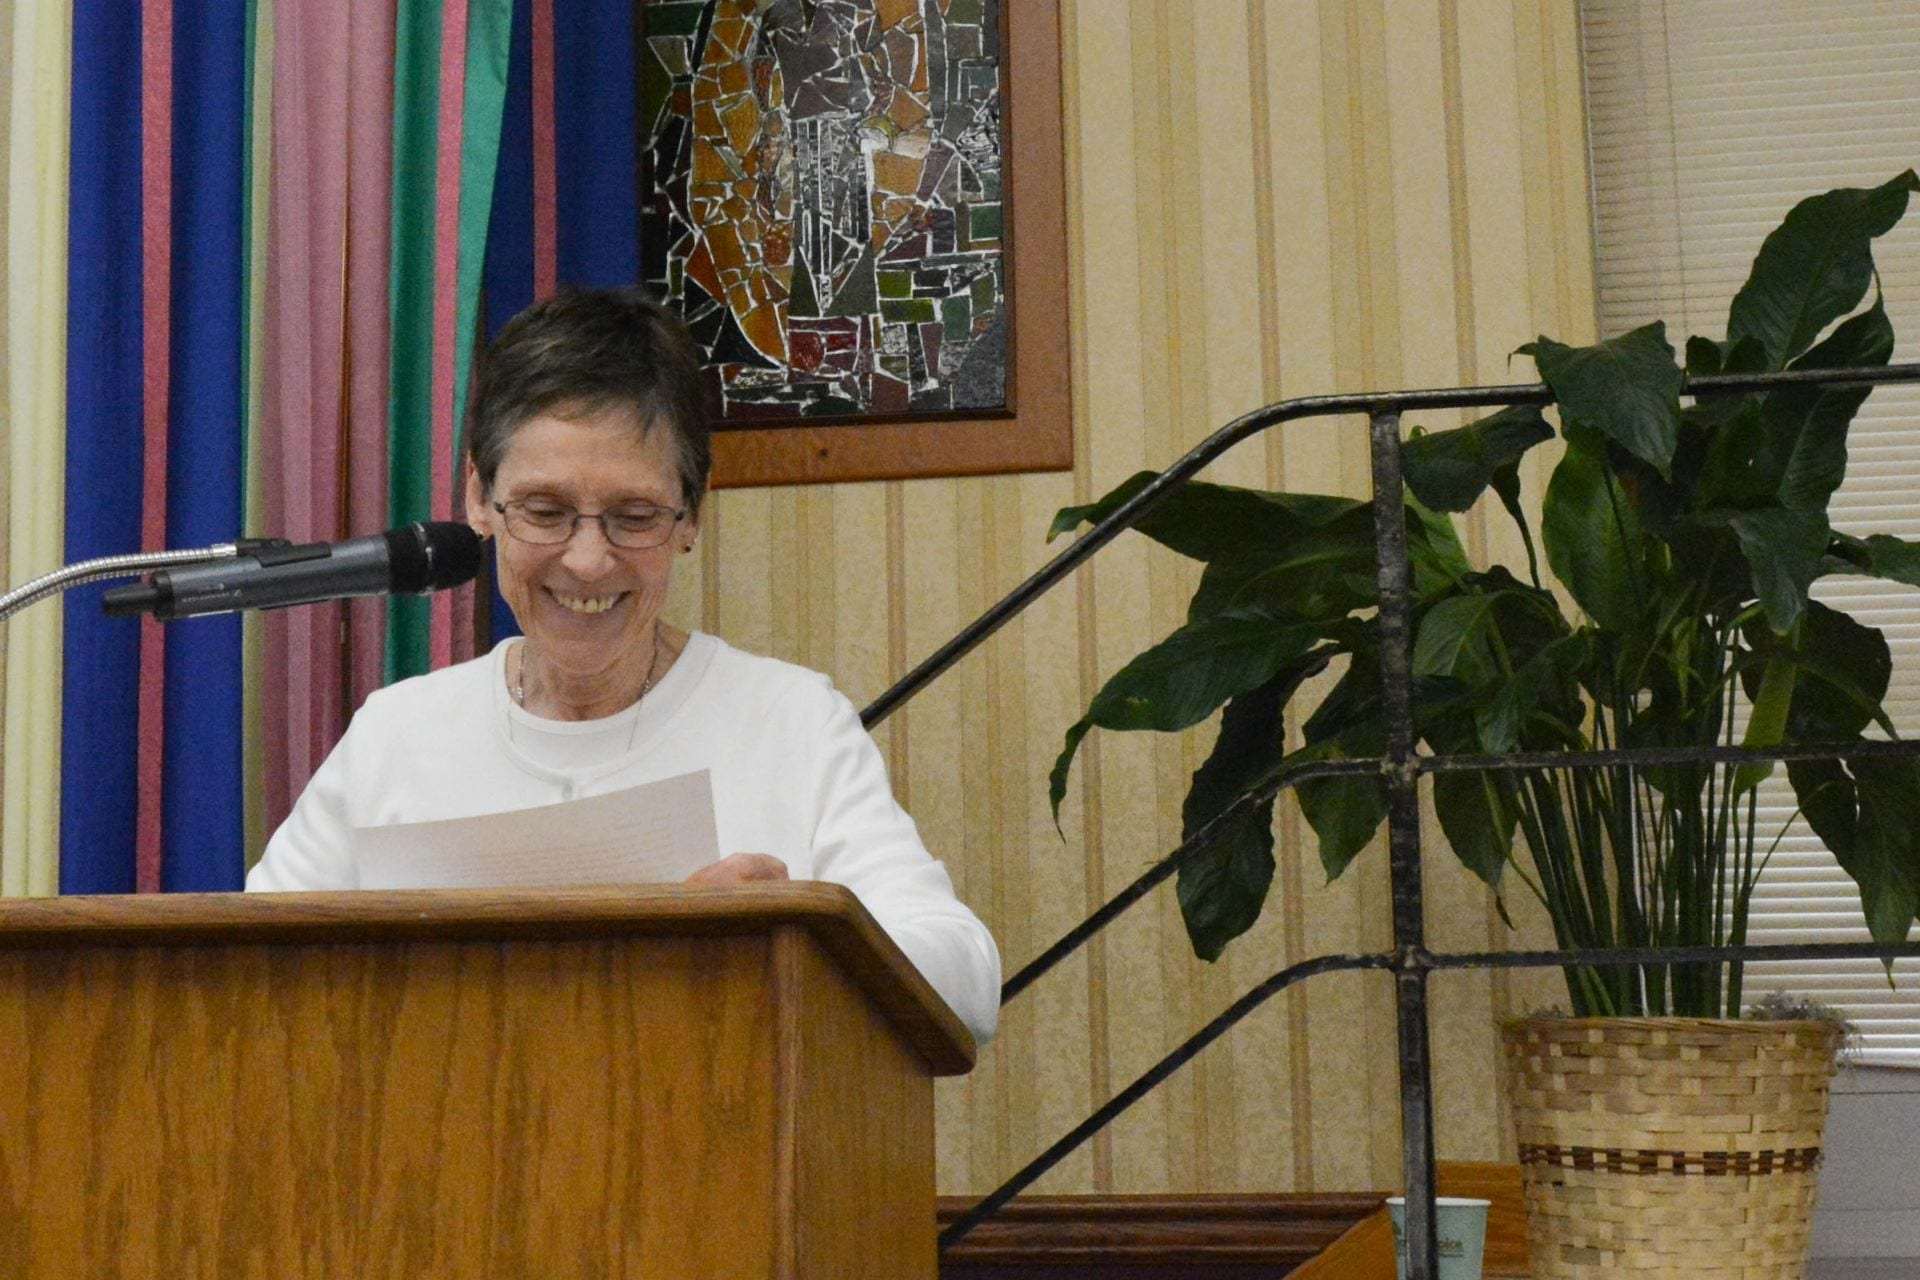 Sister Sharon Costello addresses members of the congregation during their five-year Chapter gathering this past summer.